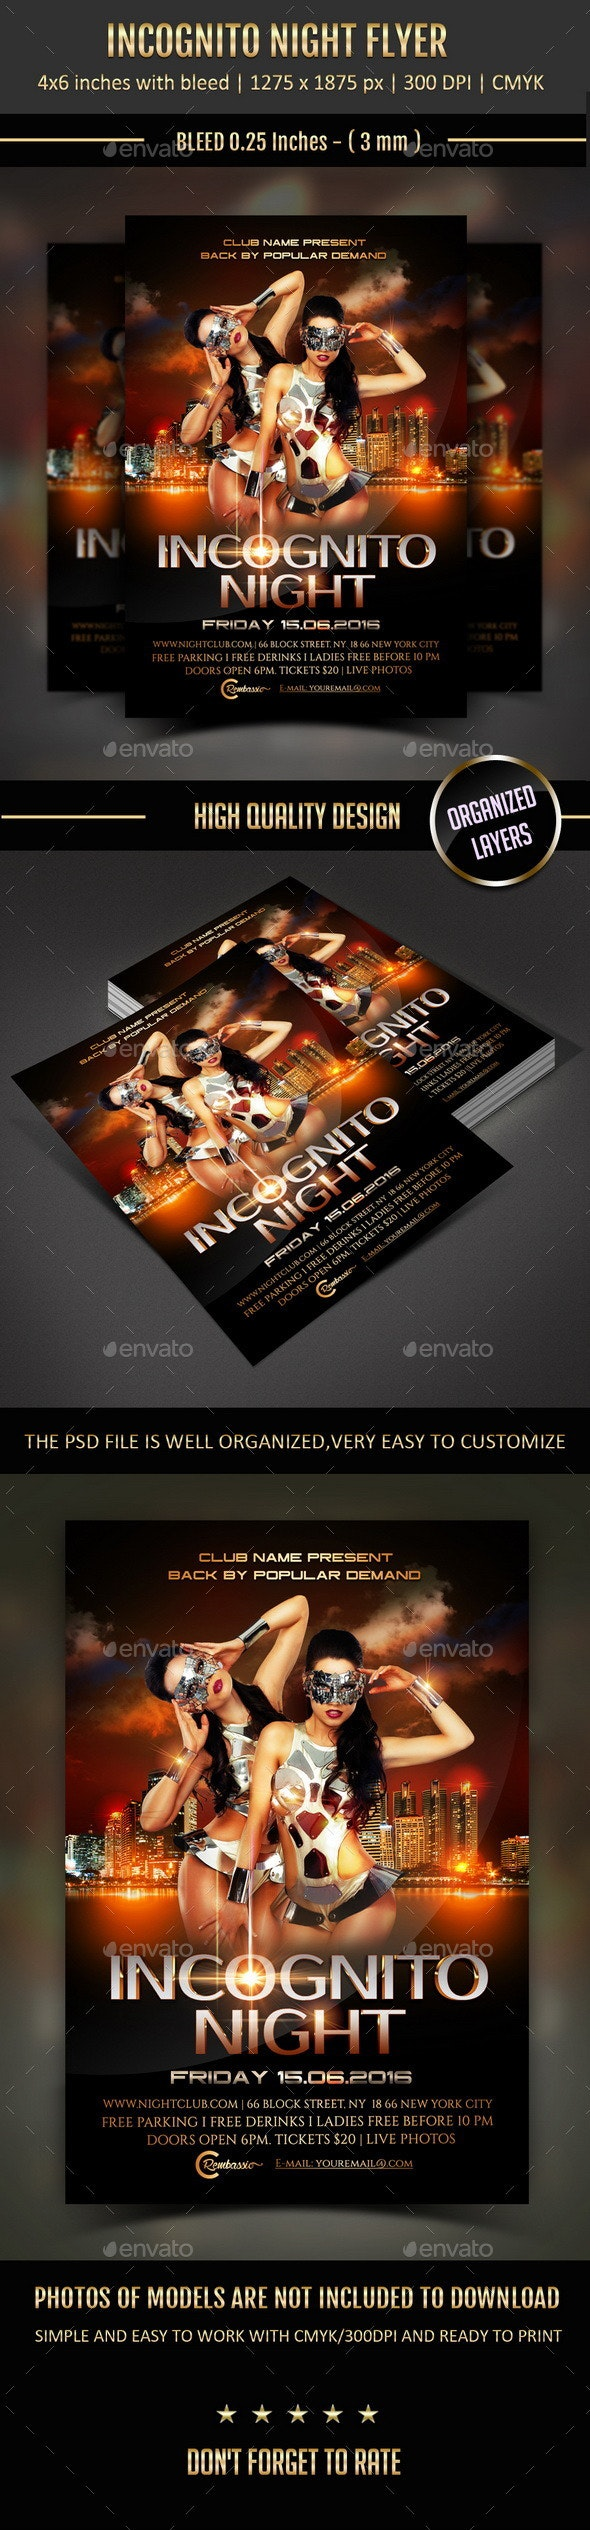 Incognito Night Flyer - Clubs & Parties Events